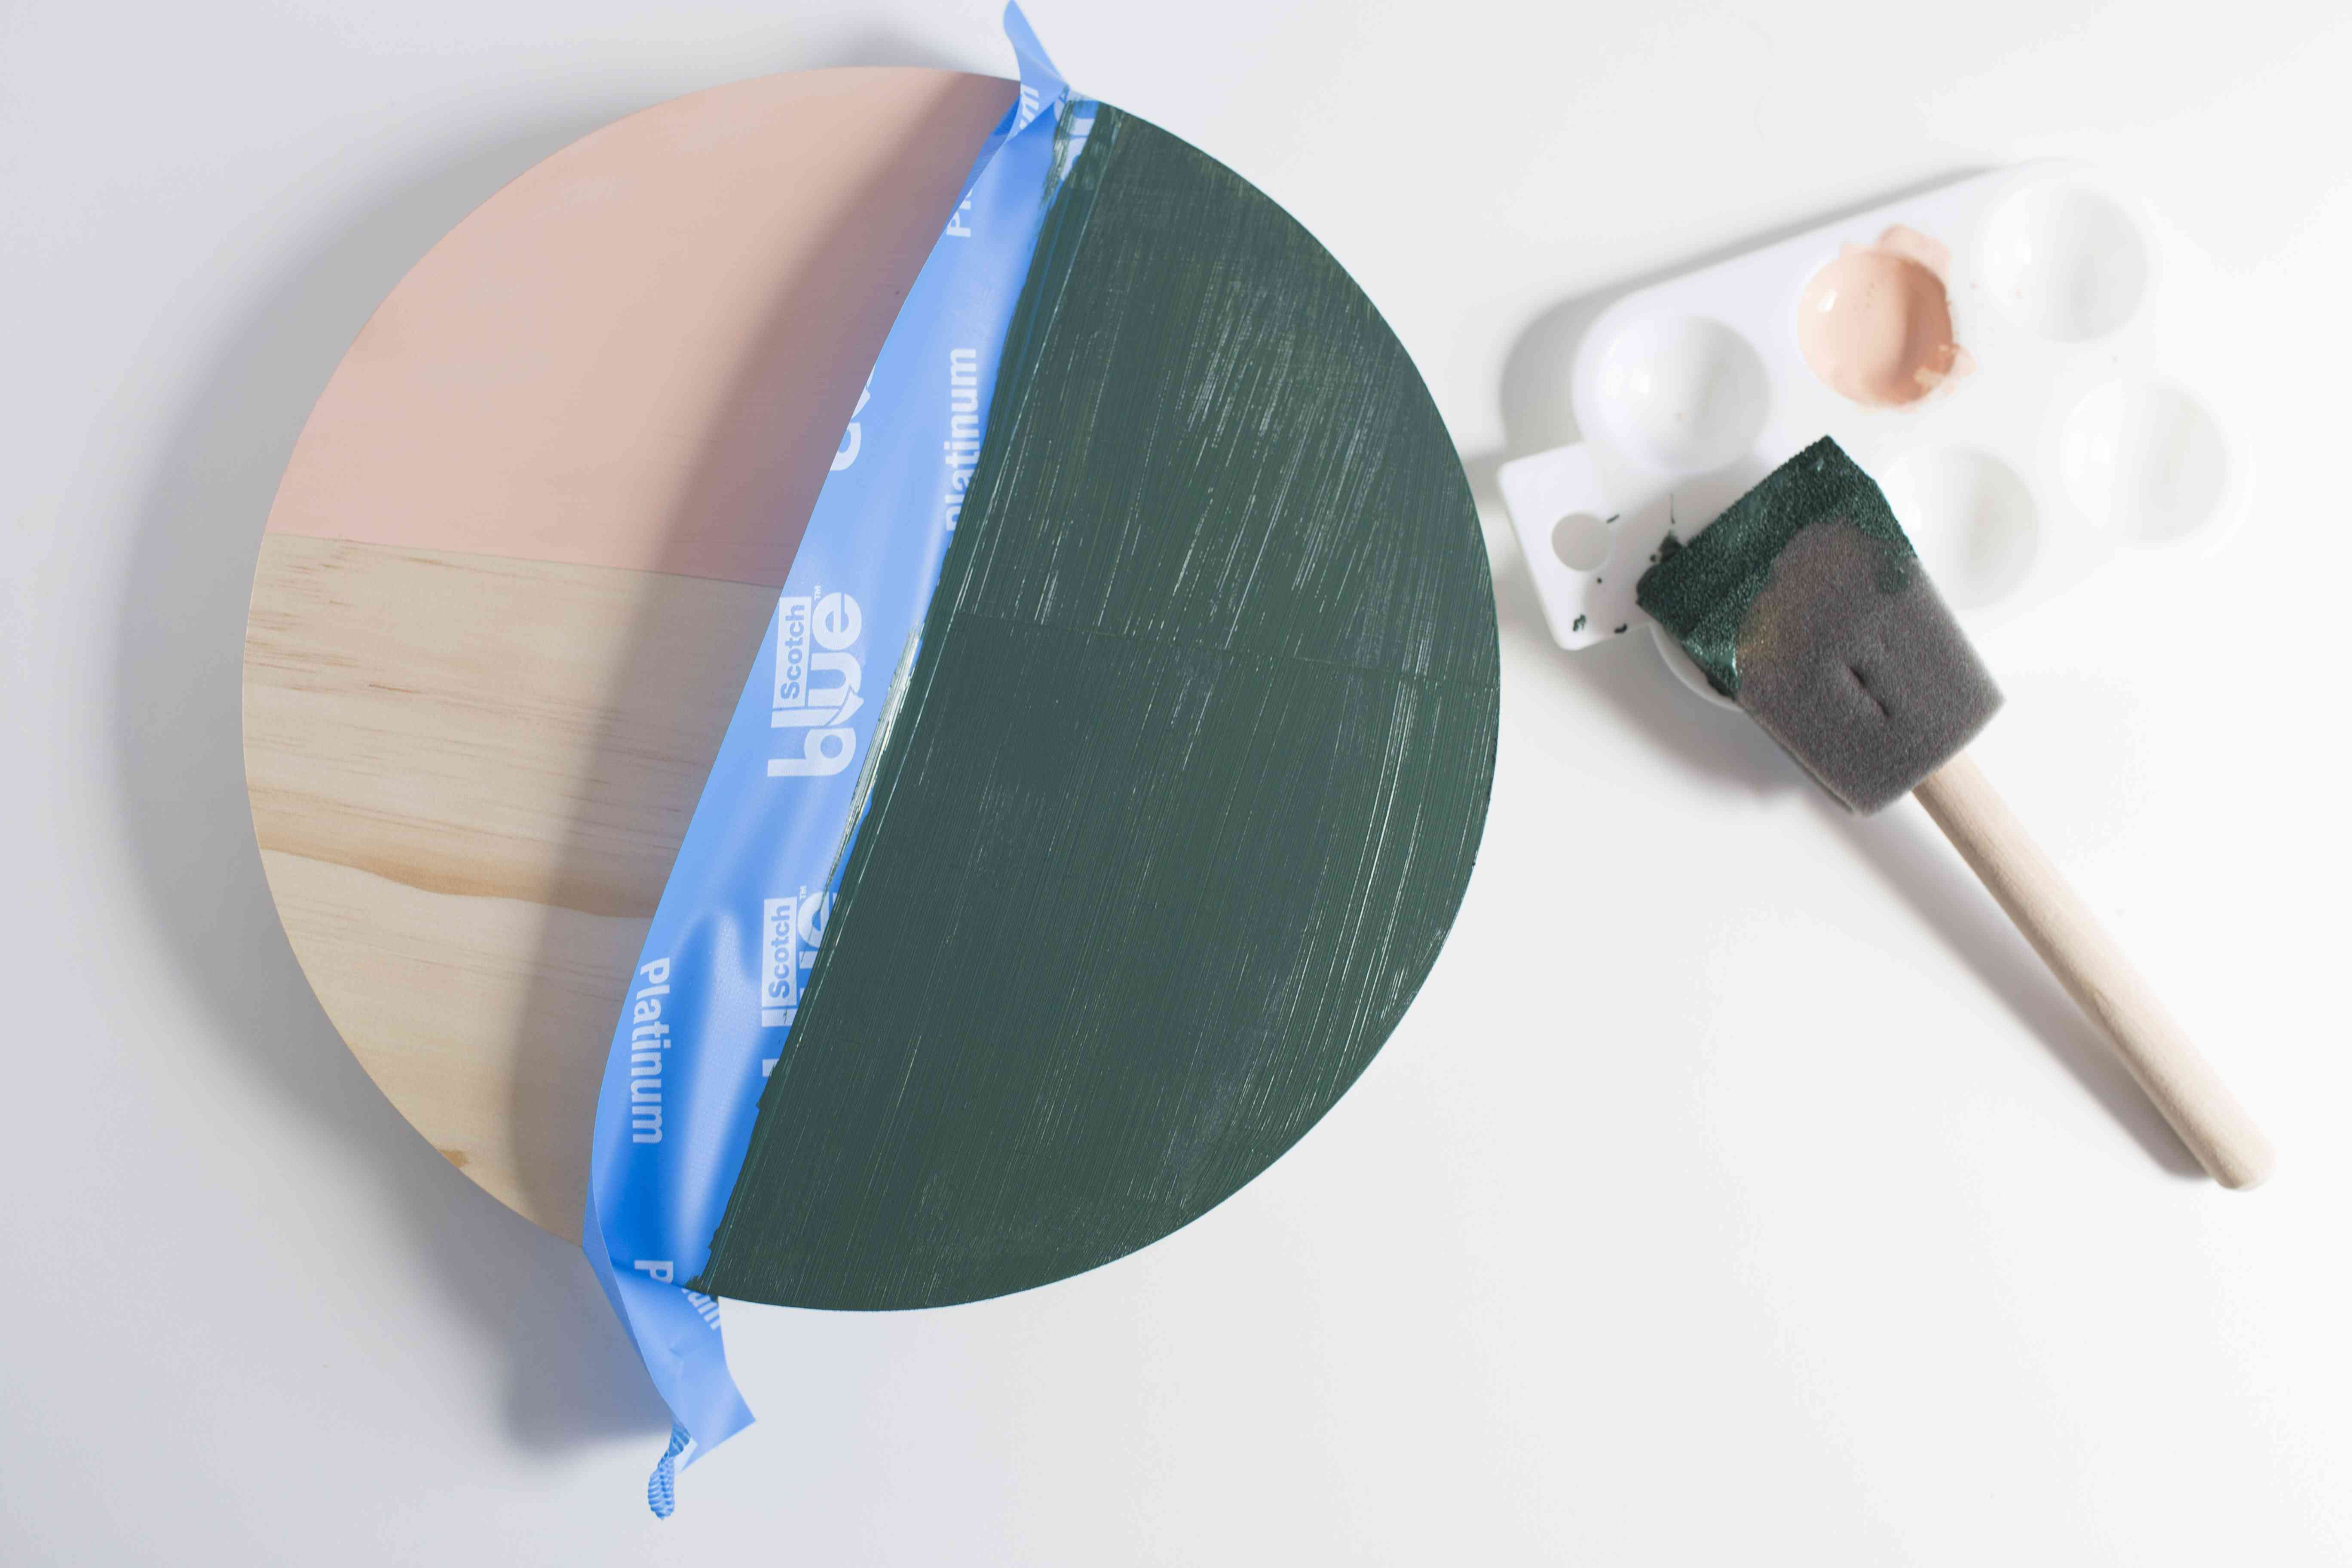 Wooden clock face with blue-green paint being painted on.